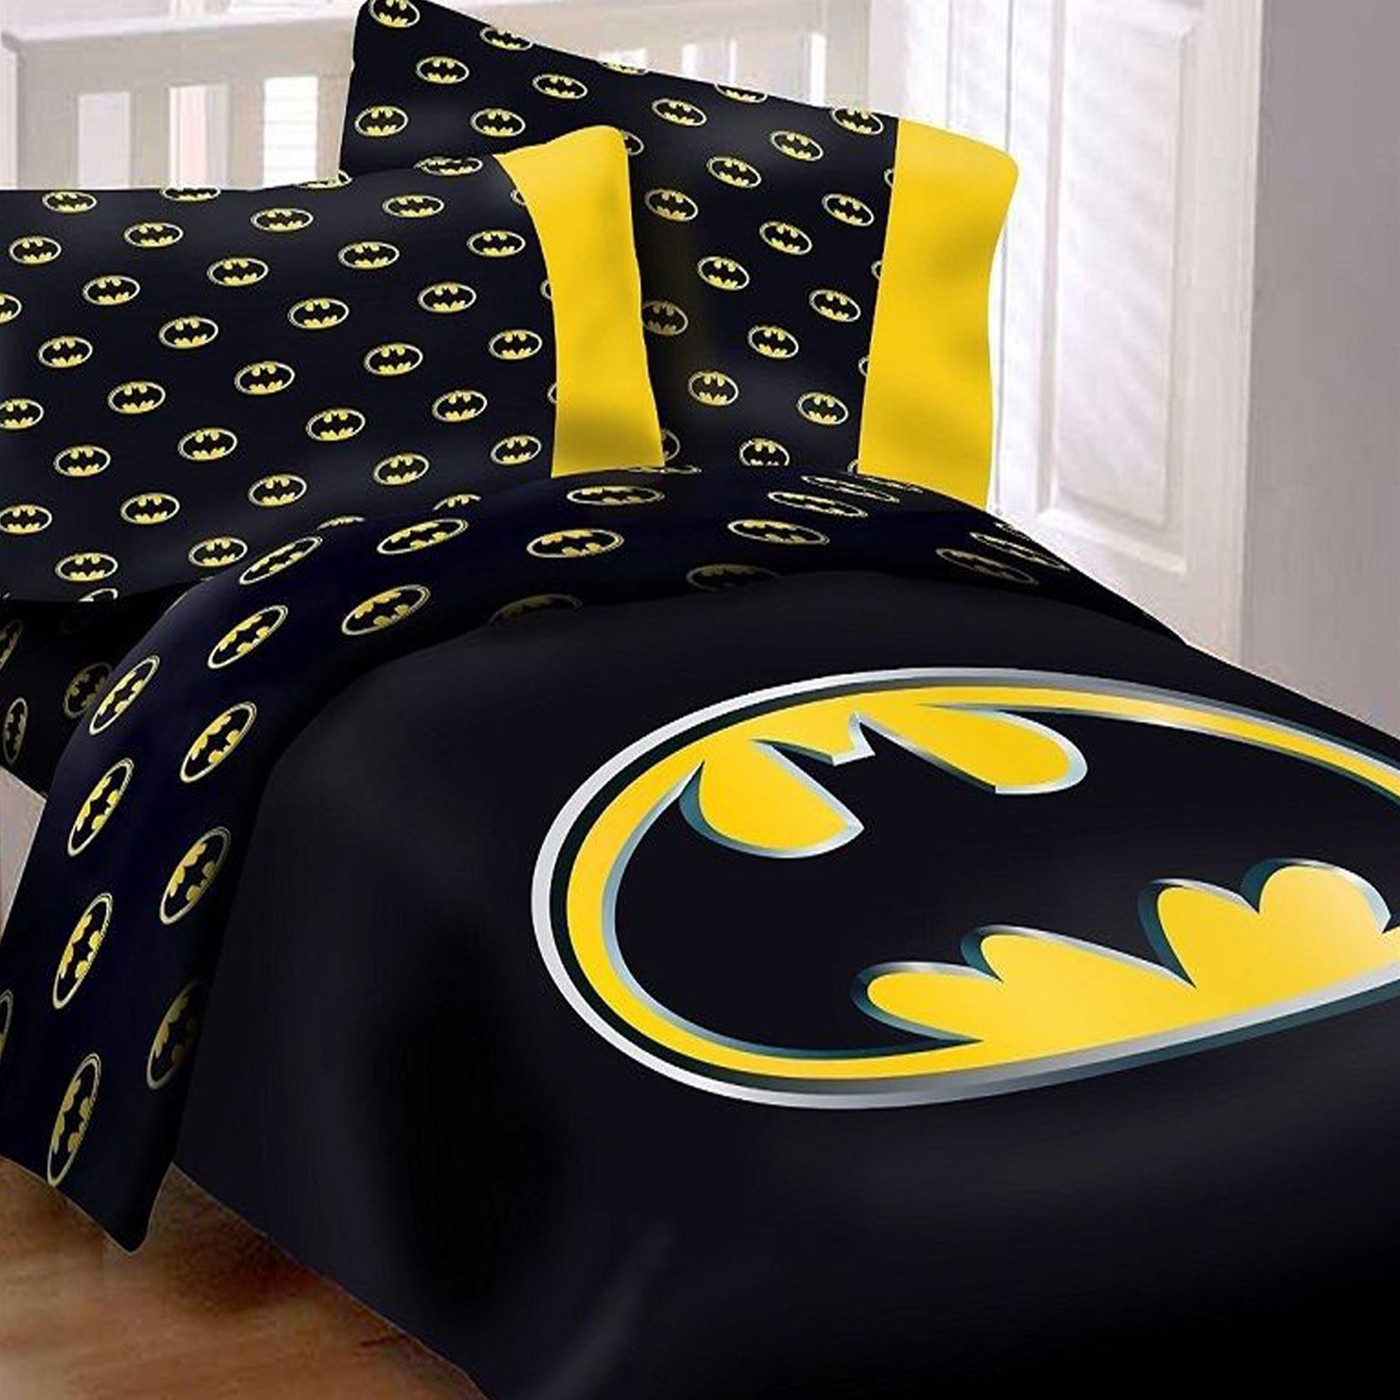 Batman Queen Comforter Set w/ 2 Pillow Cases